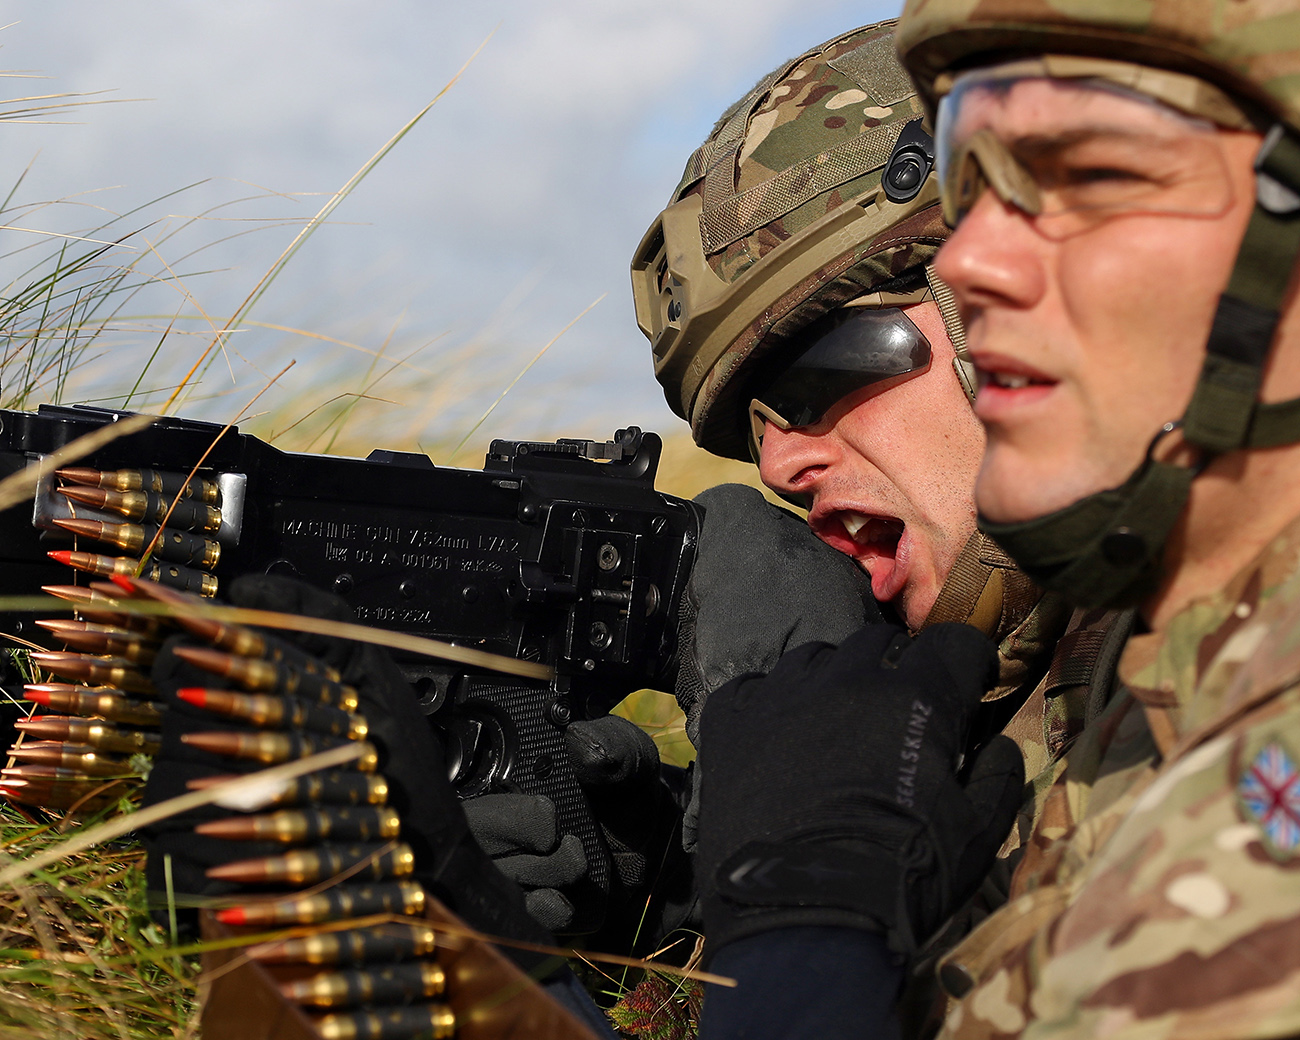 Fire and fury on the Welsh ranges from Royal Marines Nuclear guardians